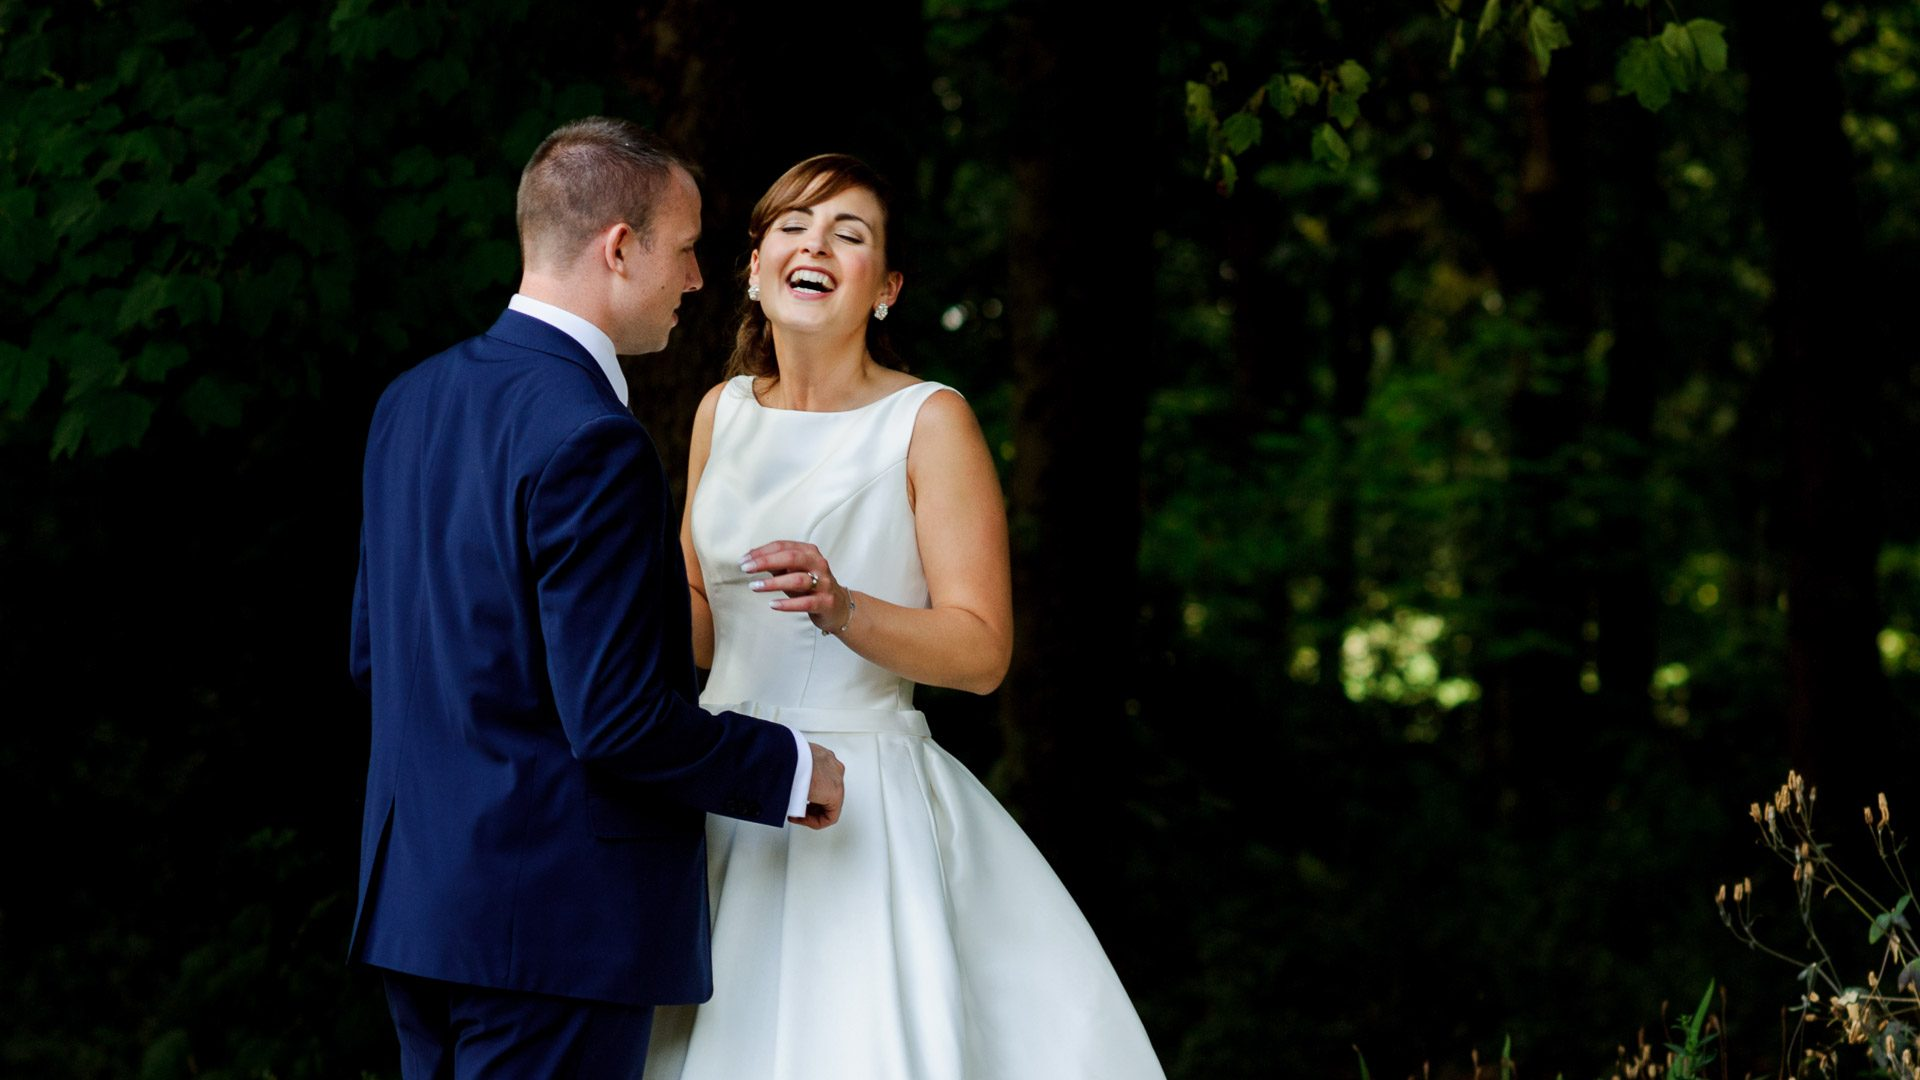 Full Wedding - Laura & Dean, Rivington Hall Barn